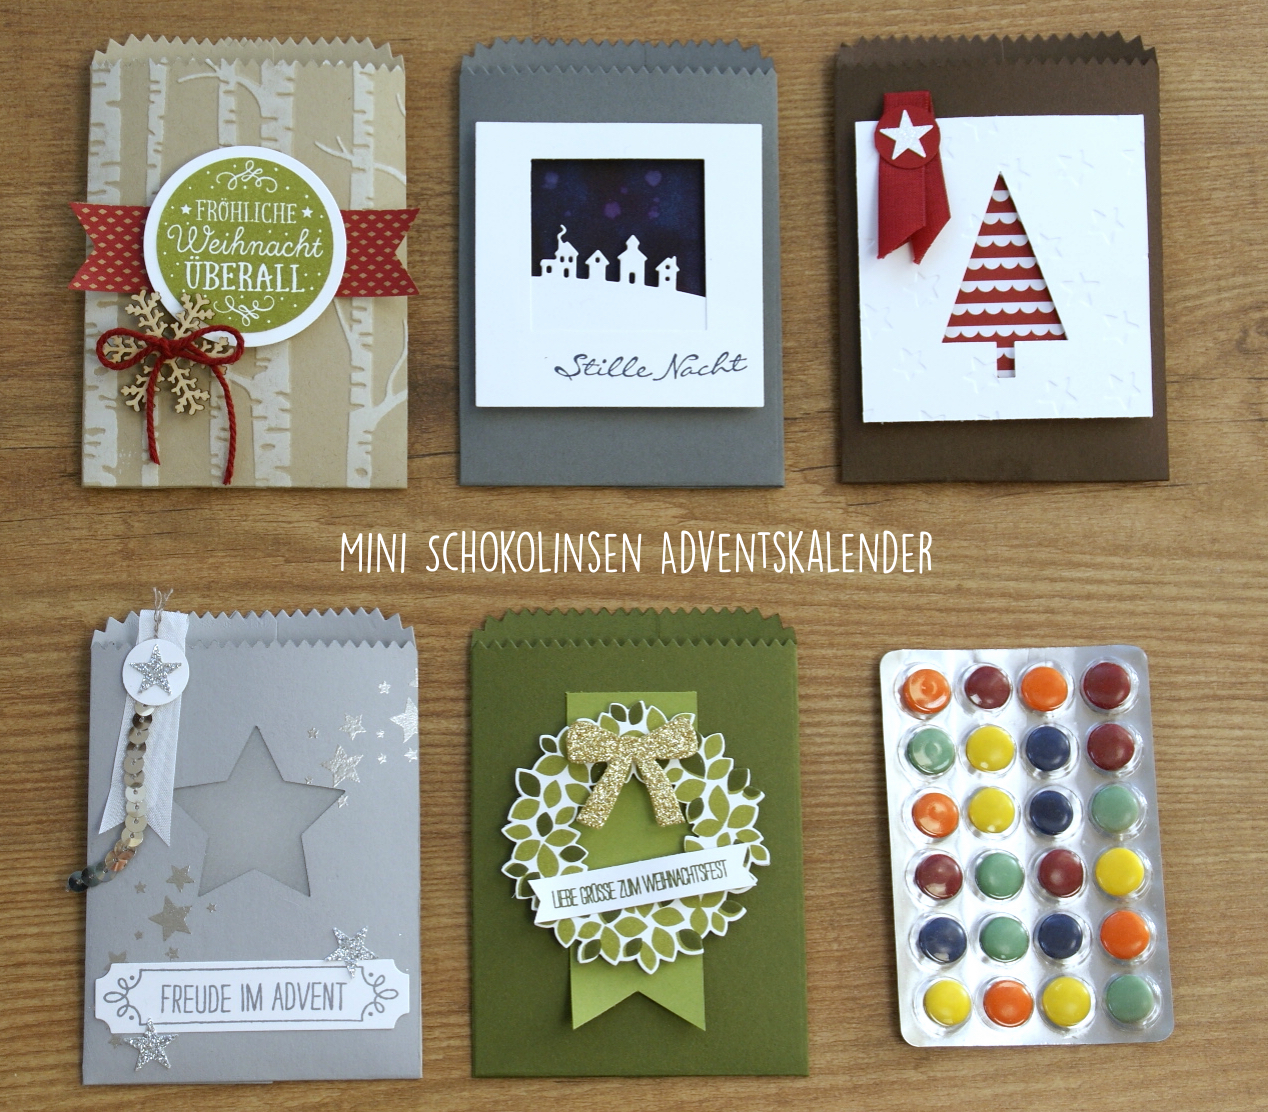 verpackungen f r mini schokolinsen adventskalender stempel stanze und papier. Black Bedroom Furniture Sets. Home Design Ideas